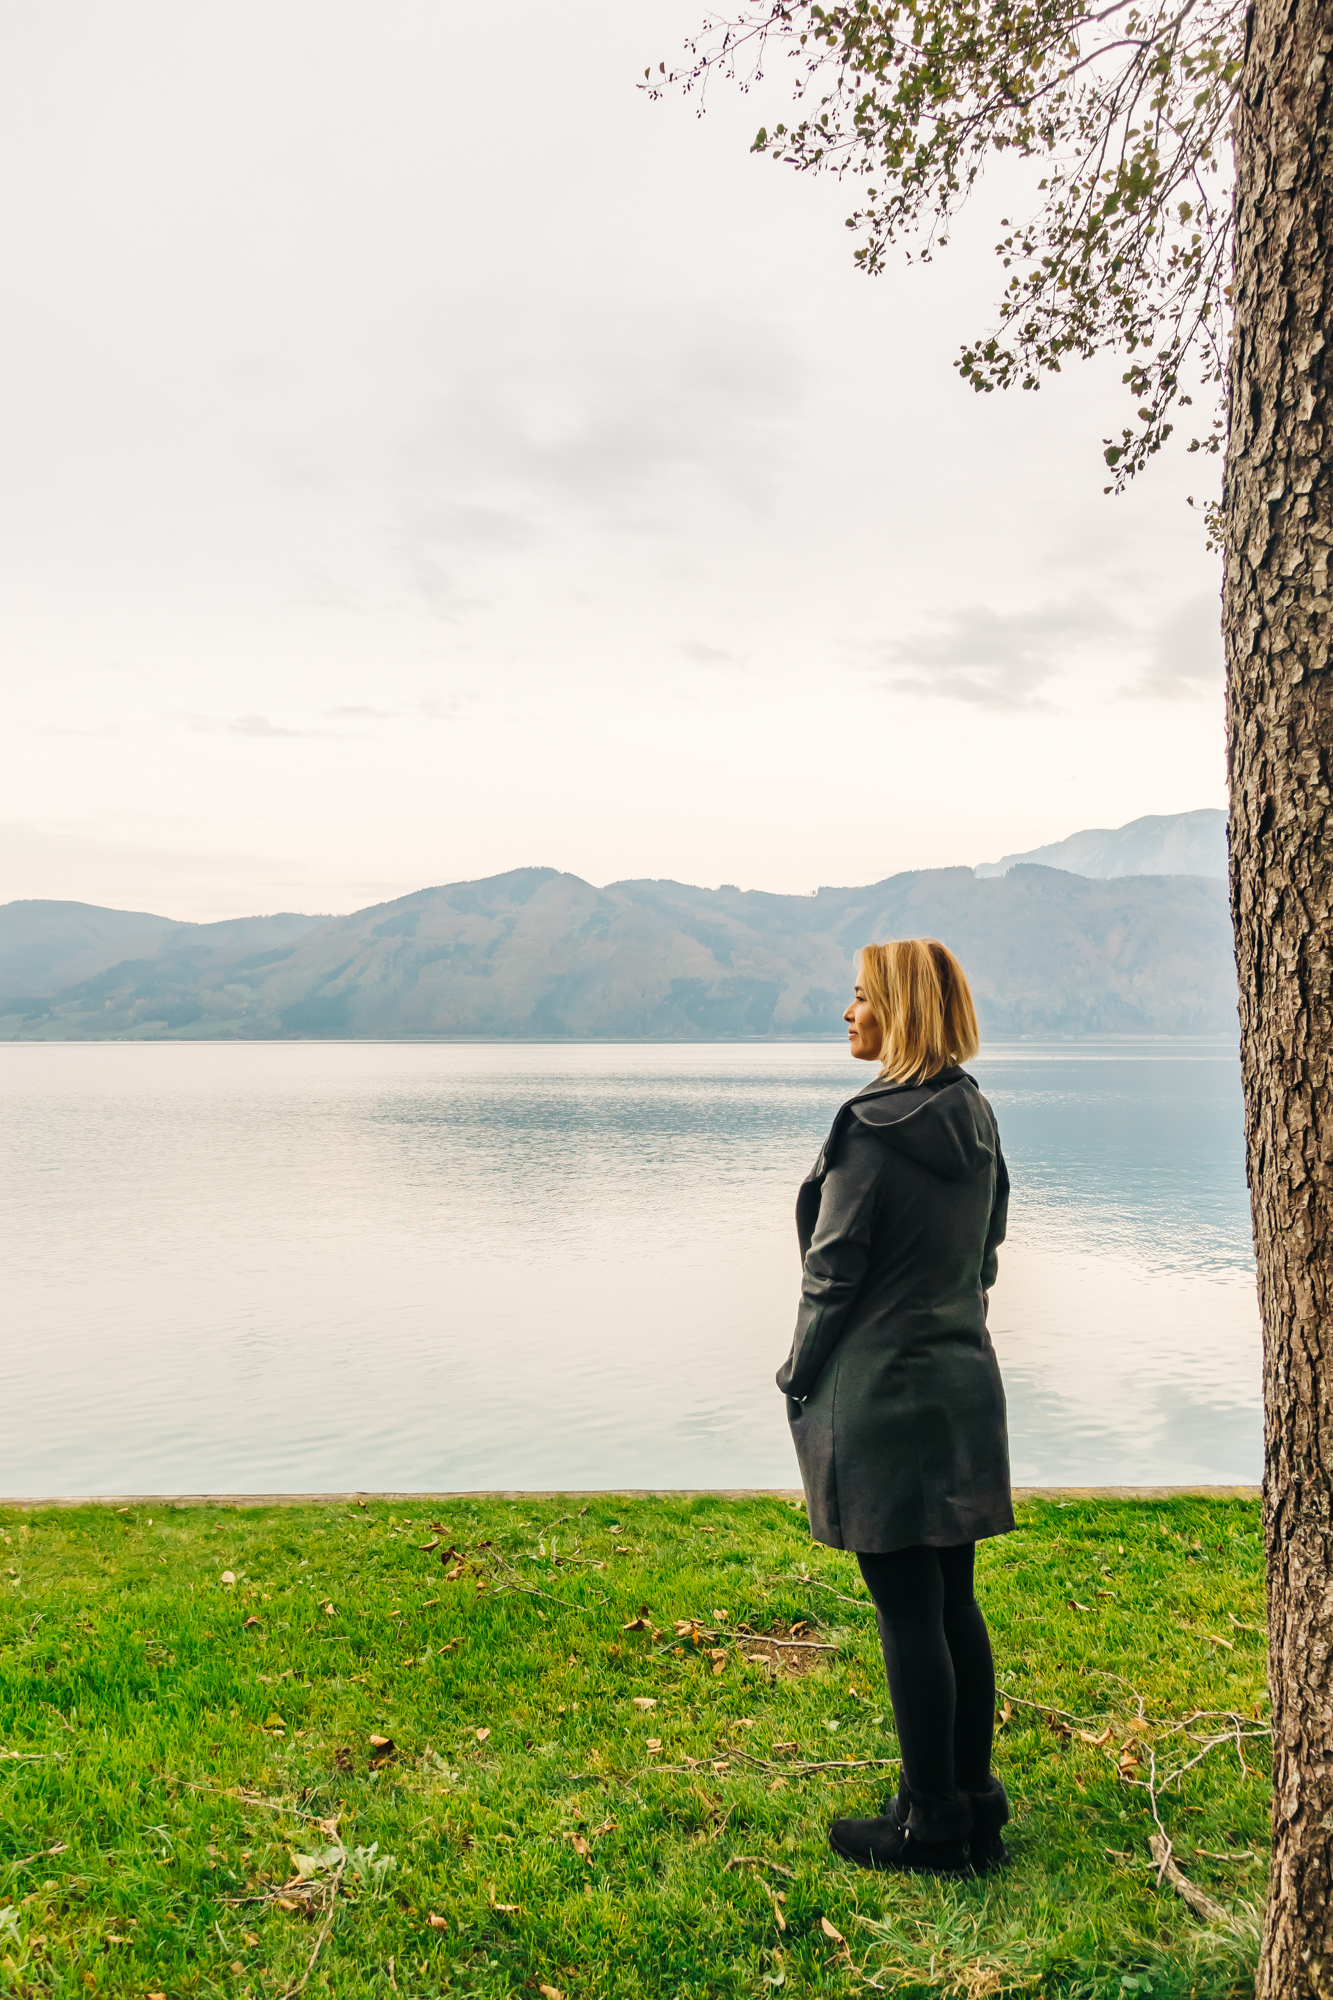 Wish we could have stayed at Lake Attersee a little longer